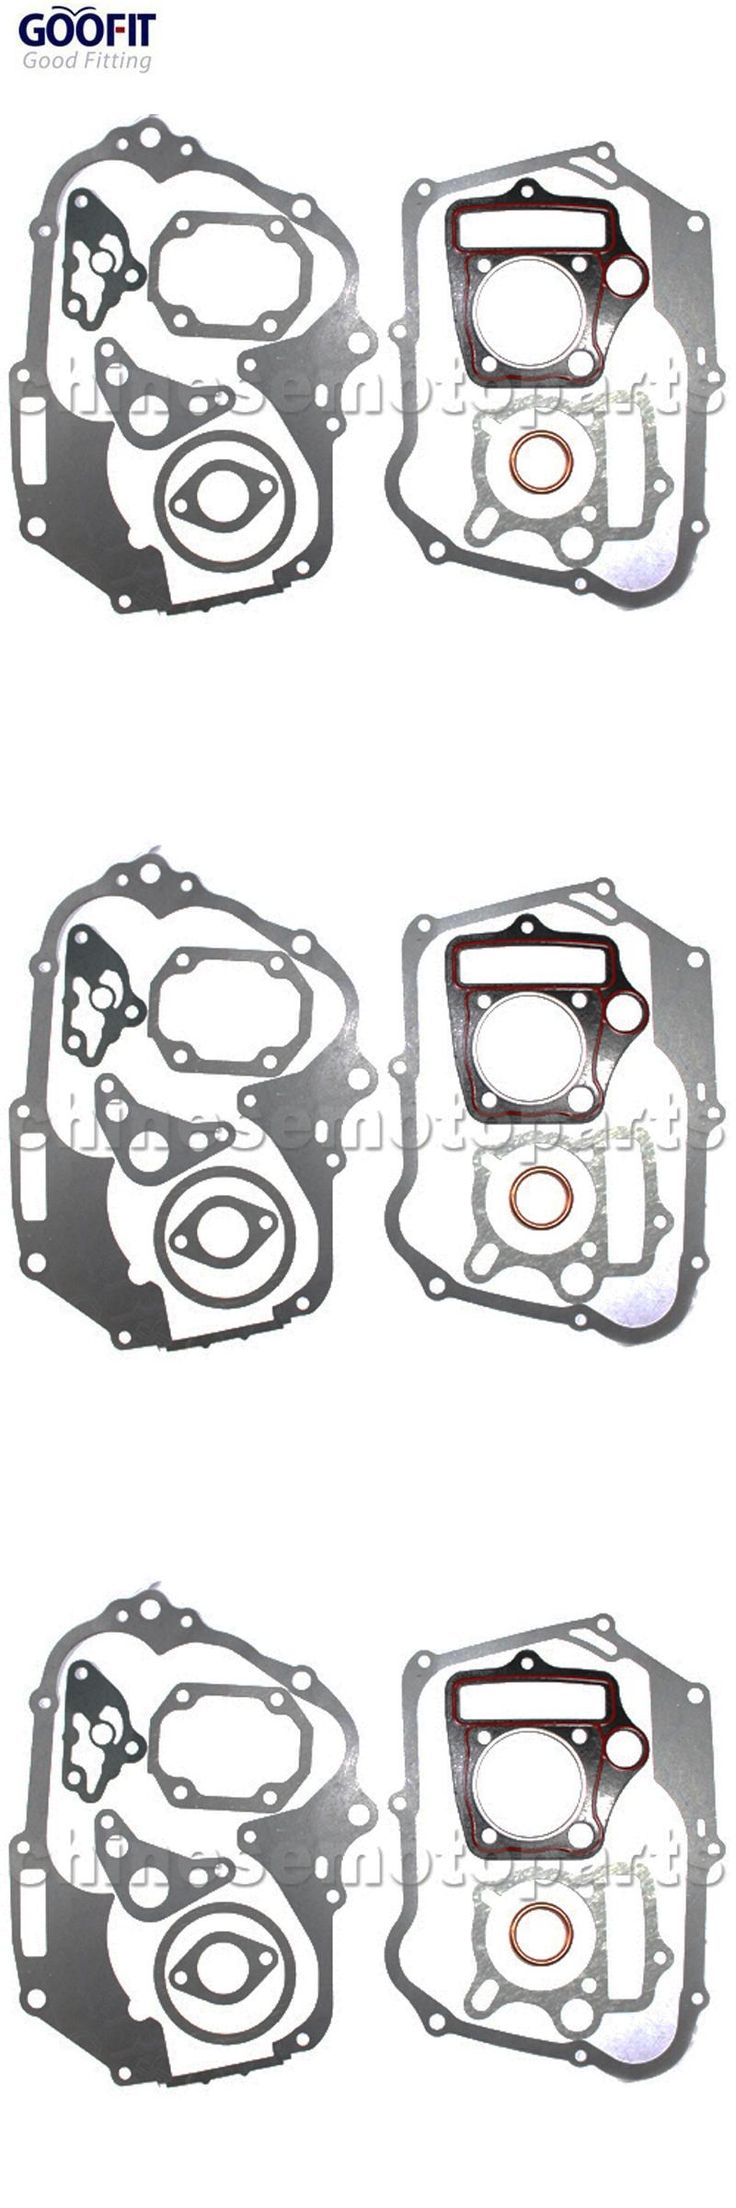 [Visit to Buy] Complete Gasket Set for 110cc Kick Start Dirt Bike motorcycles accessory gasket set K078-012 #Advertisement